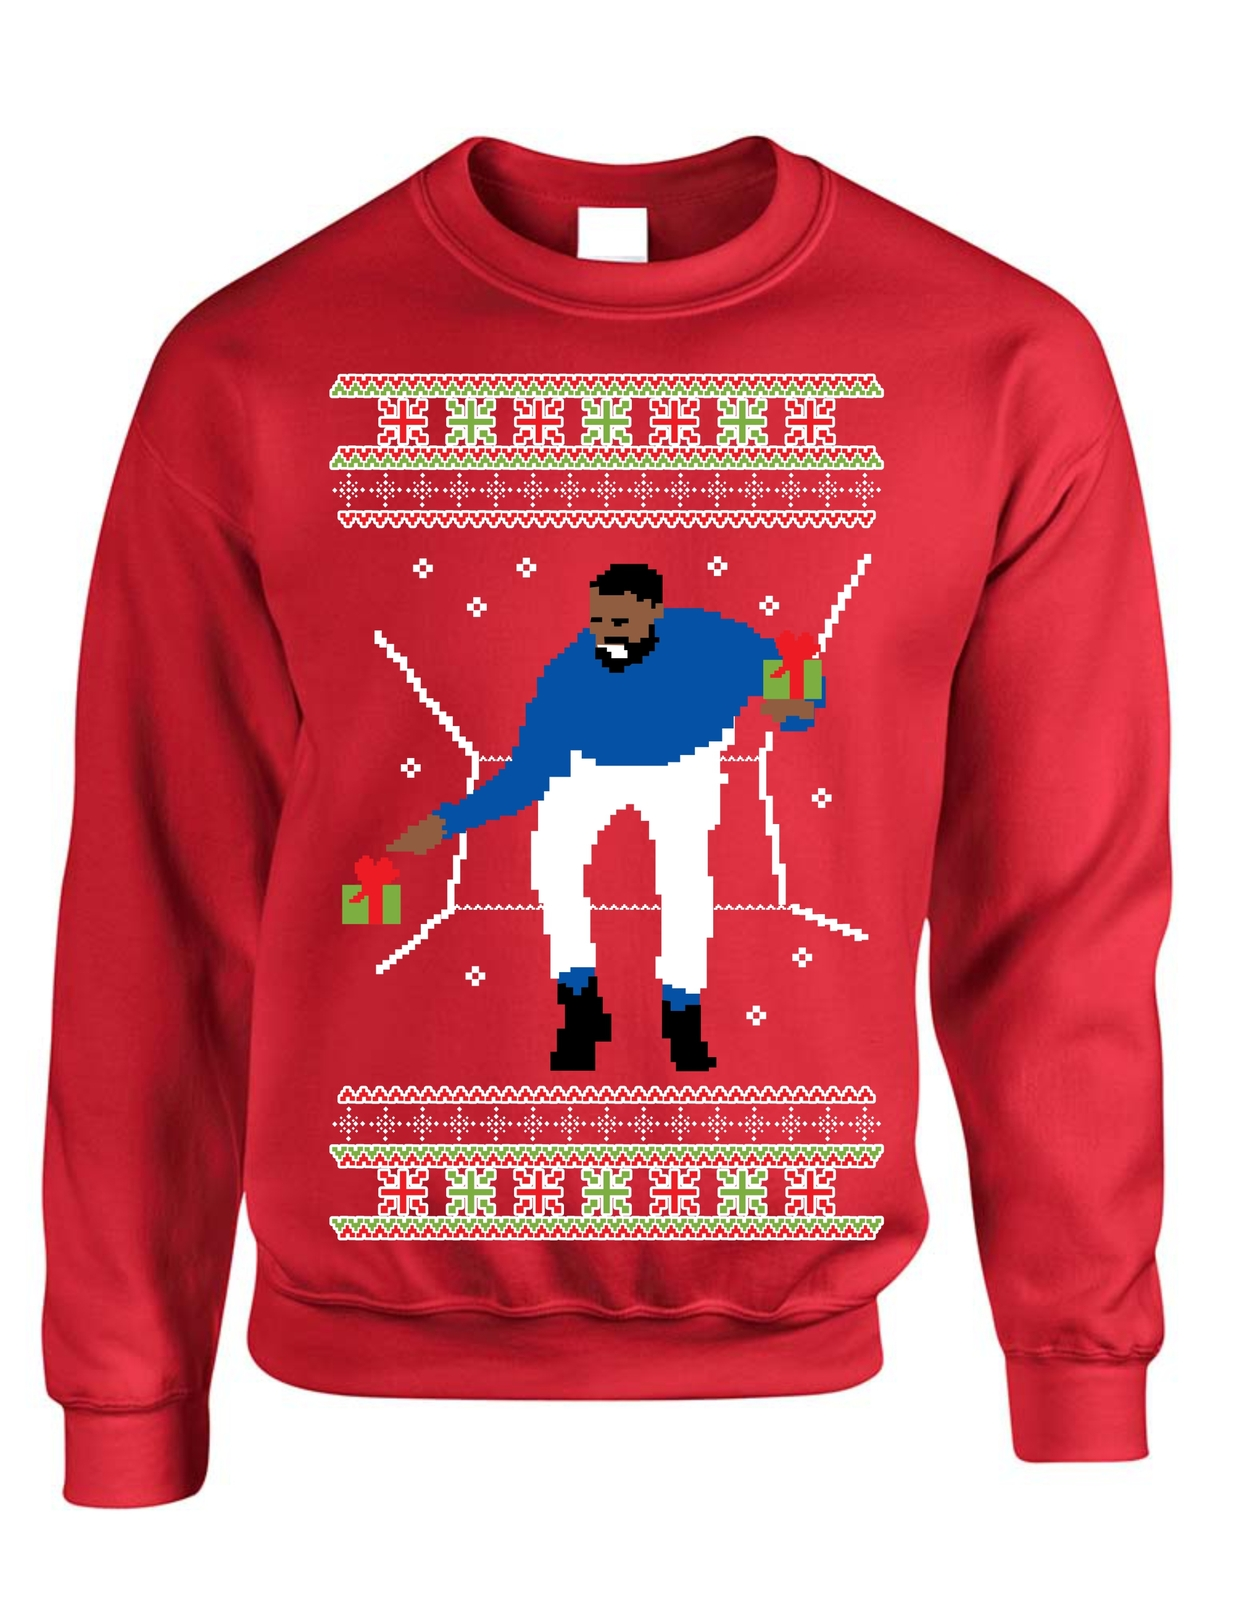 Adult Crewneck 1-800 Hotline Bling Ugly Christmas Sweater